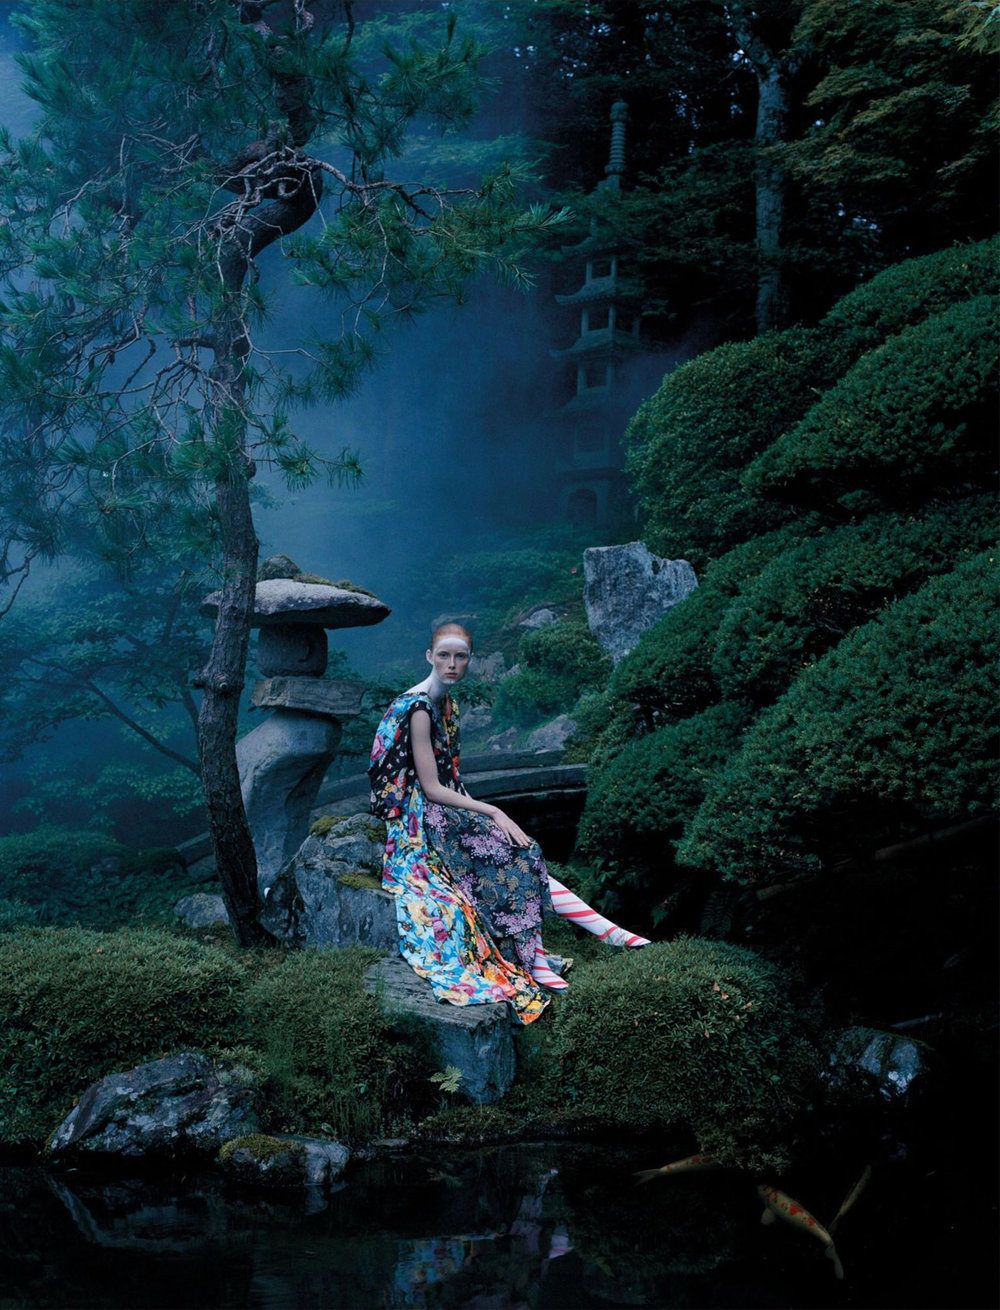 The Forest Awakes: Landscape and Imagery of Japan